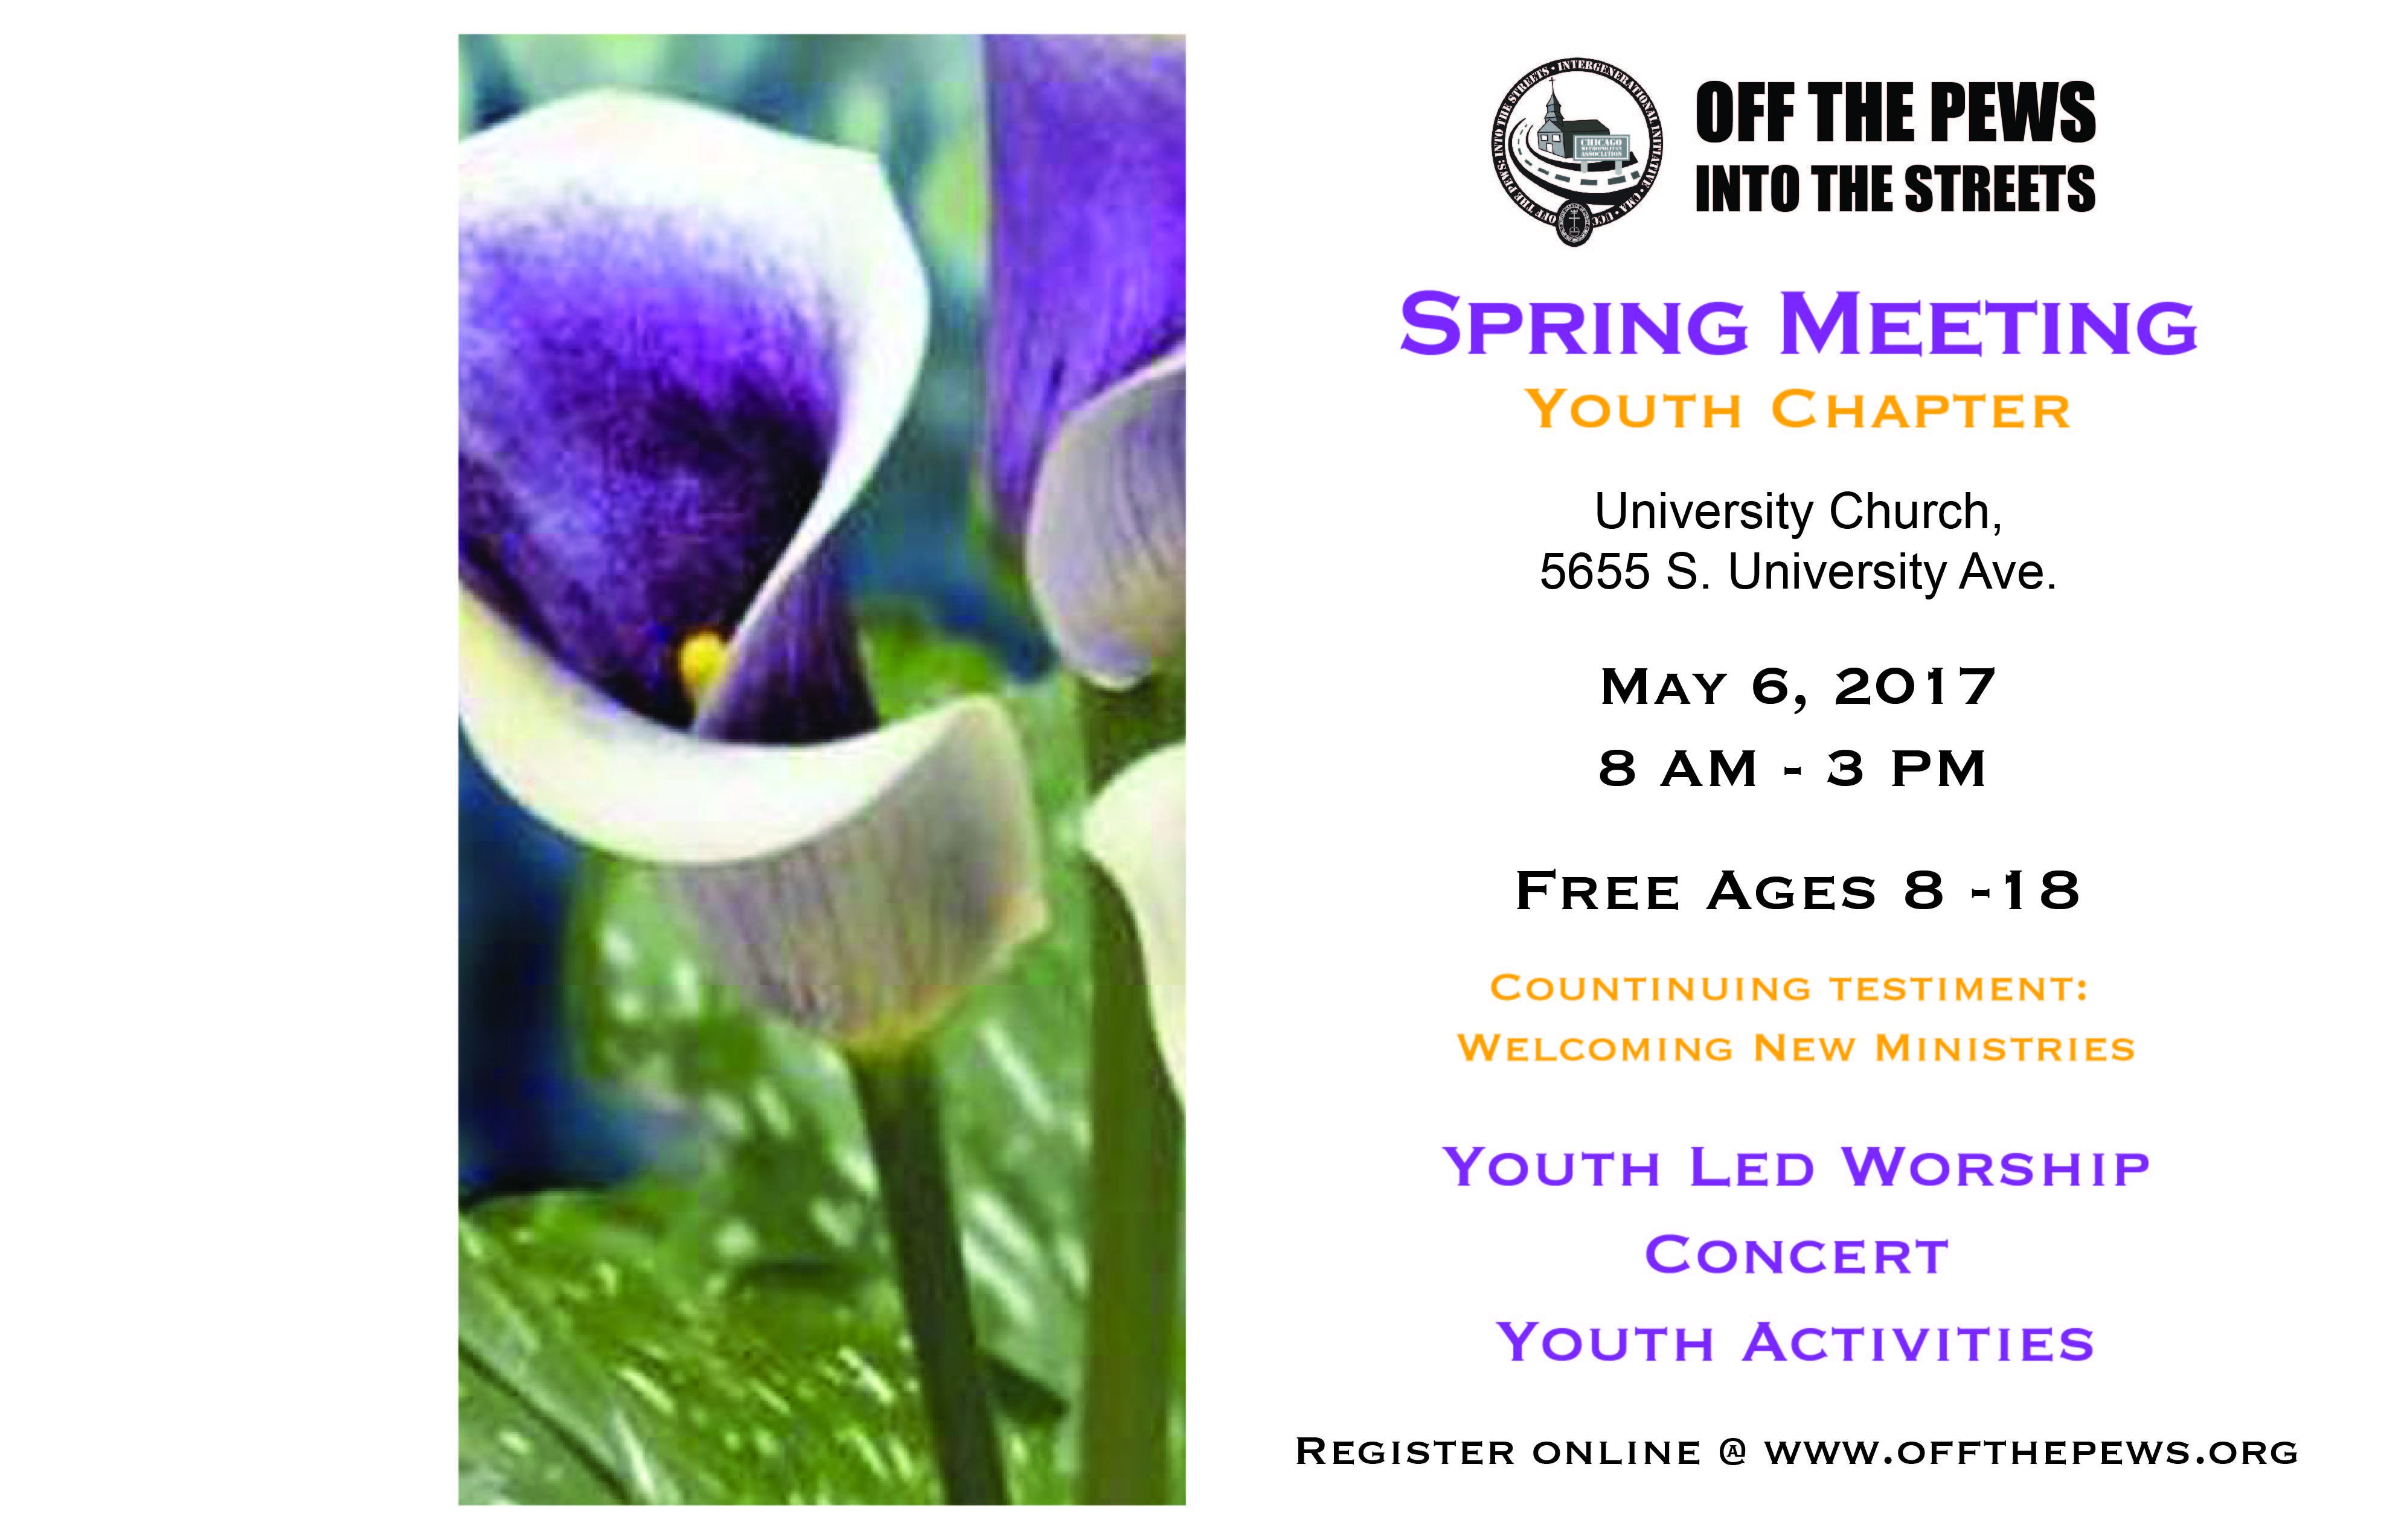 Spring Meeting of the Metropolitan Association - Youth Component